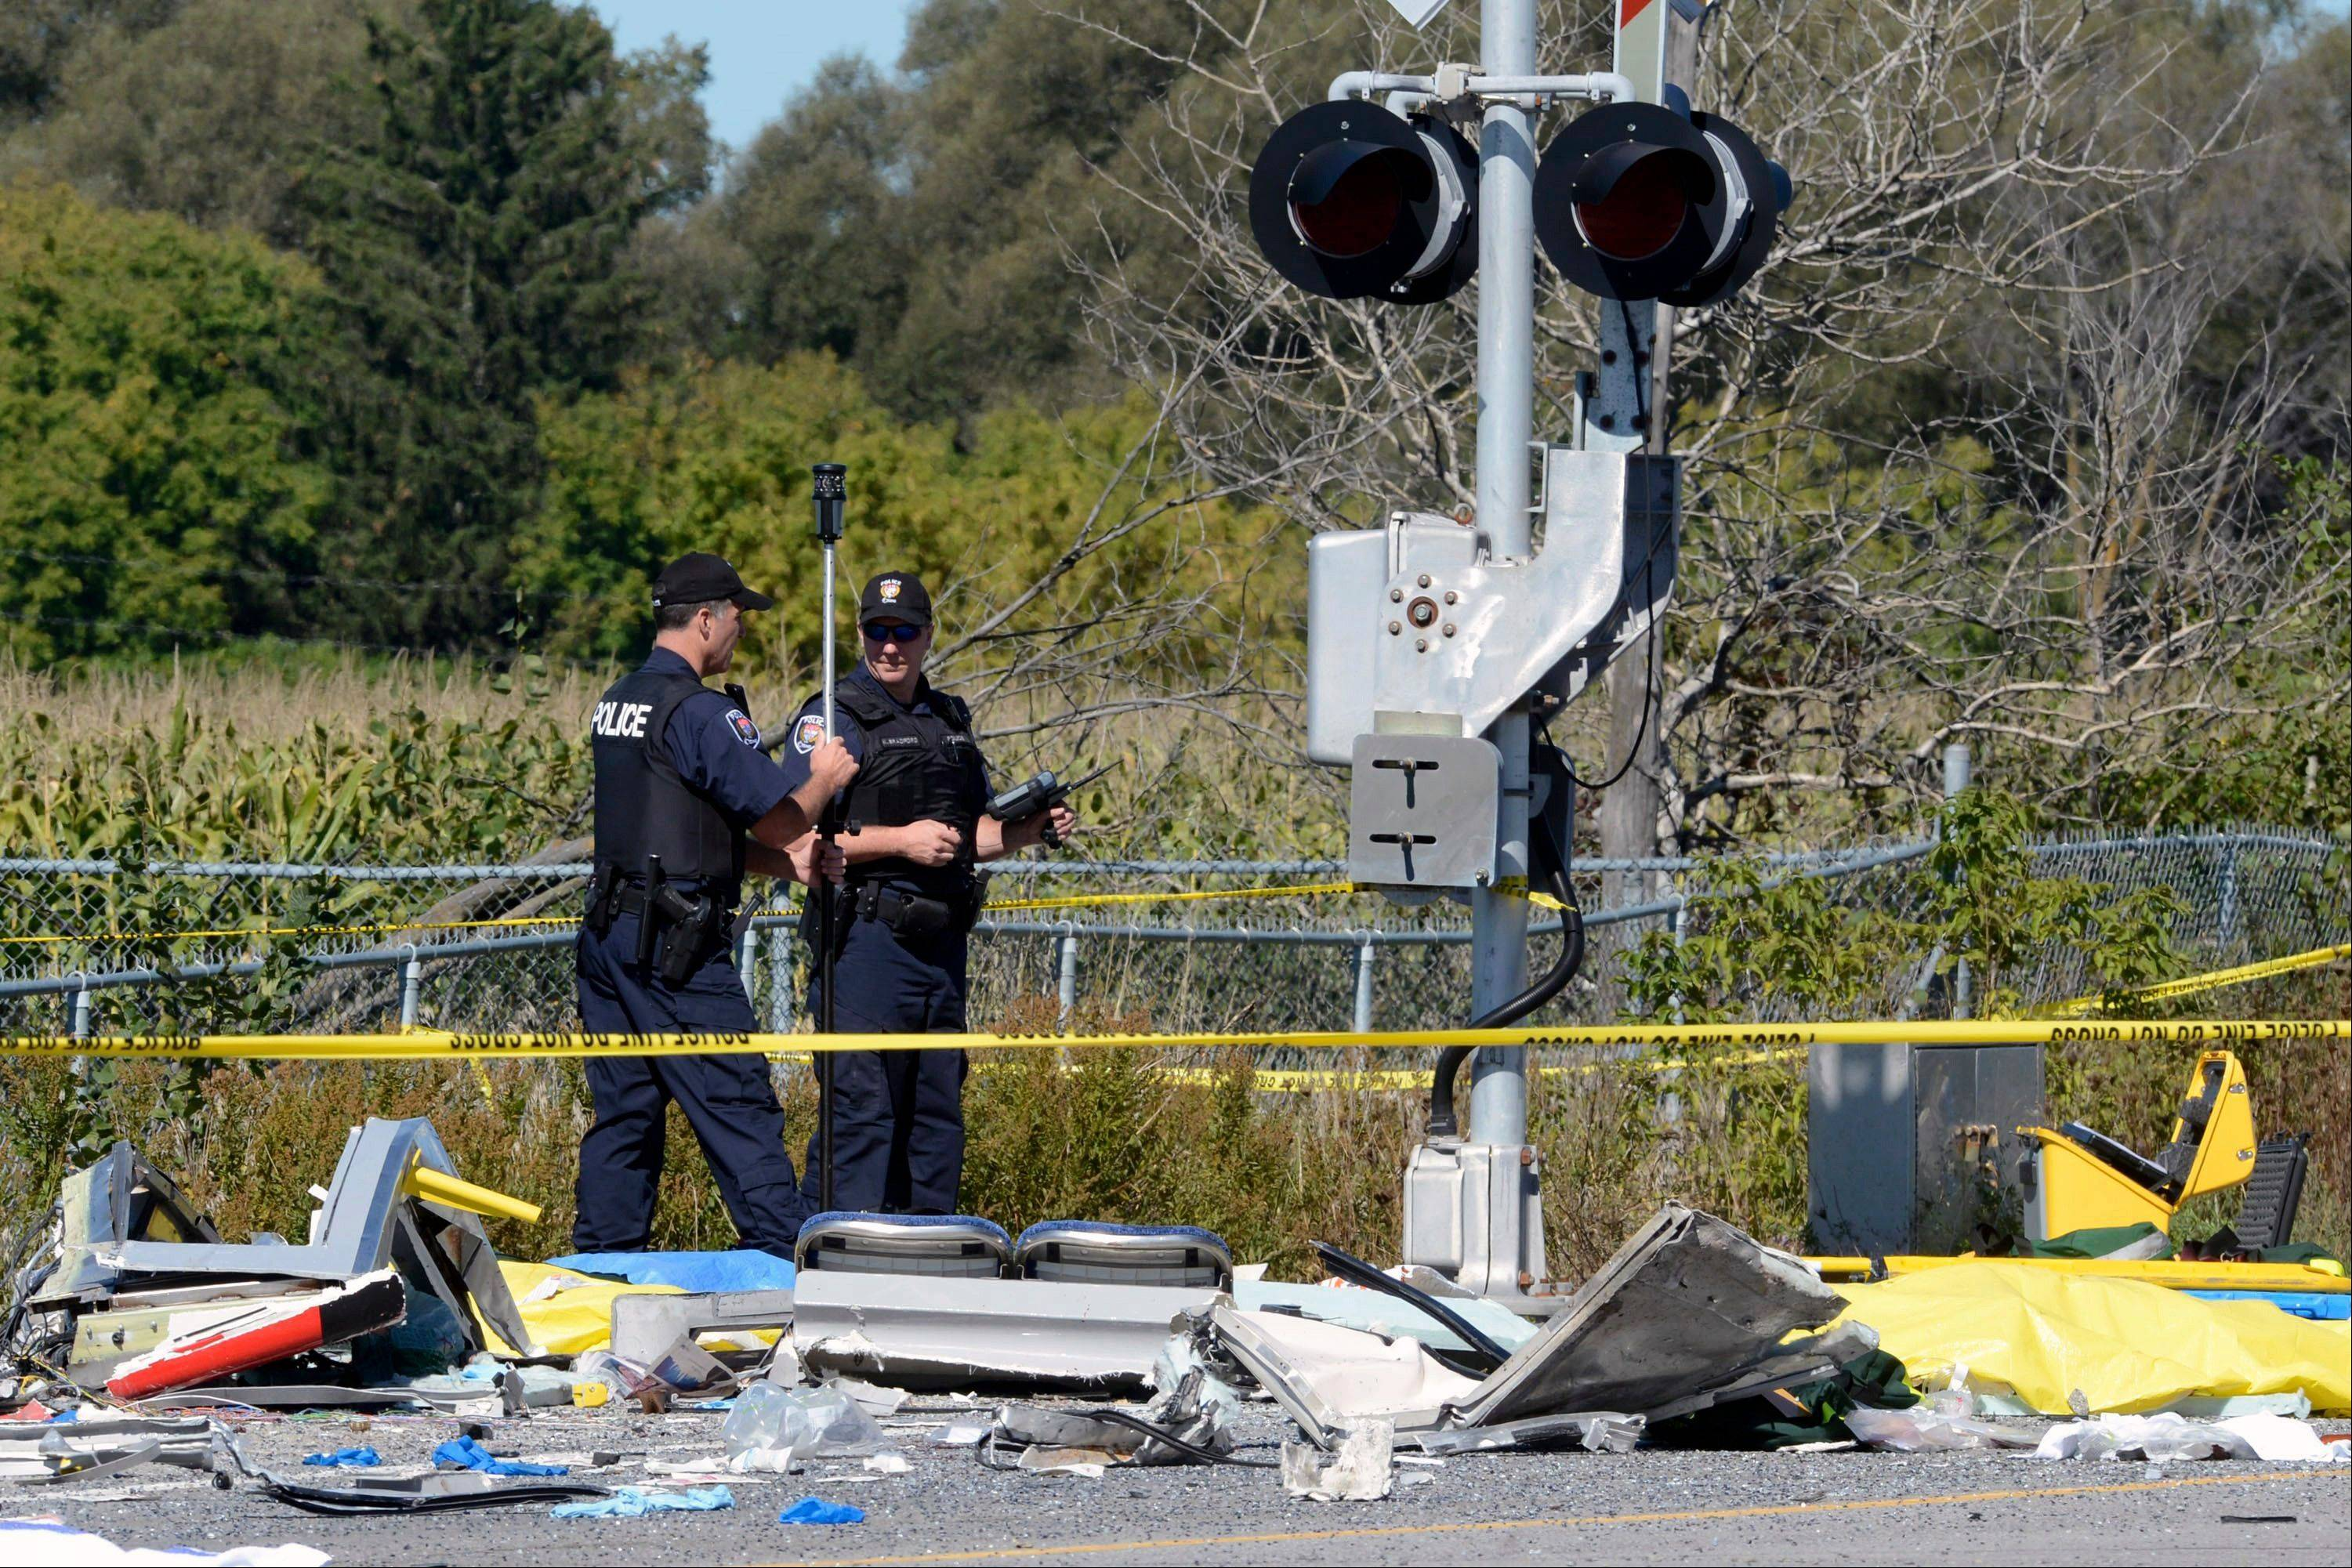 Police officers monitor the scene of a collision with a train and a city bus in Ottawa, Ontario, Wednesday, Sept. 18, 2013. An Ottawa Fire spokesman said there are �multiple fatalities� and a number of people injured from the bus.